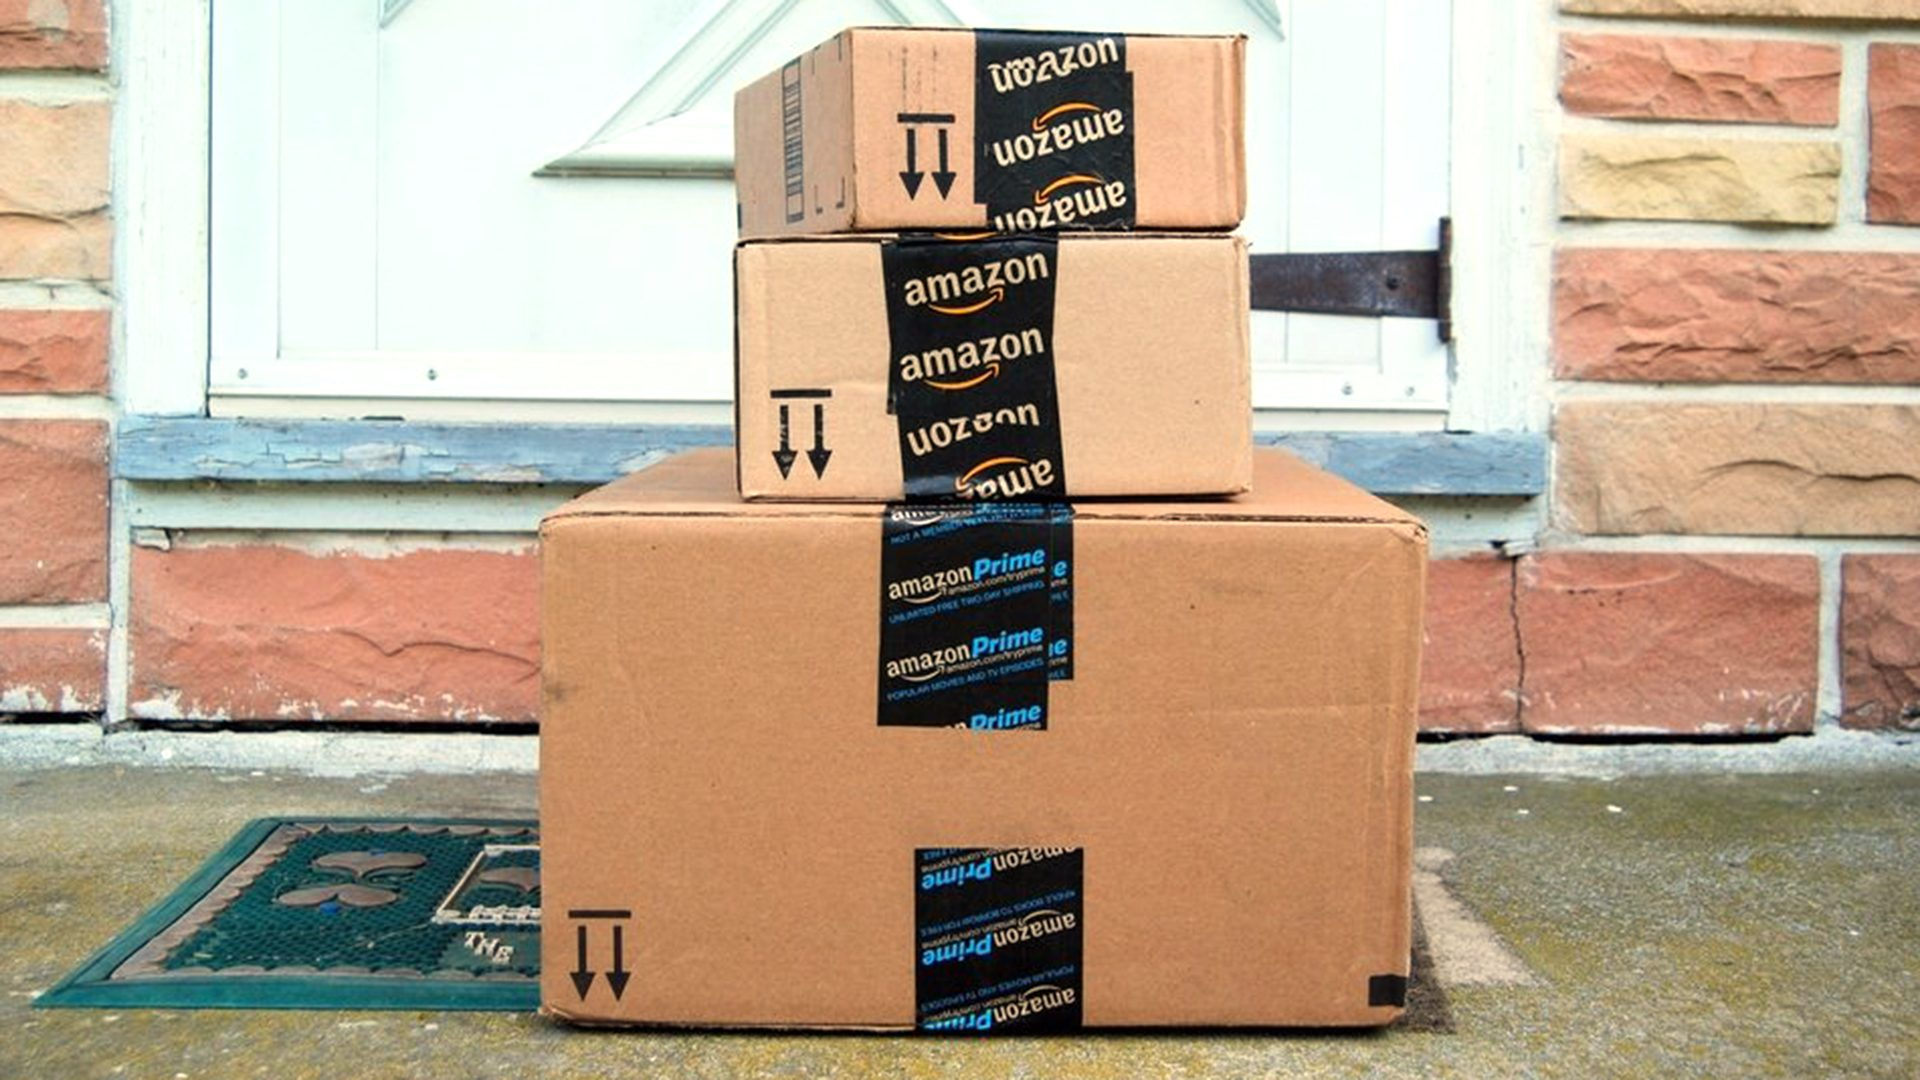 Amazon says they're trying to make one-day shipping the norm for Prime members